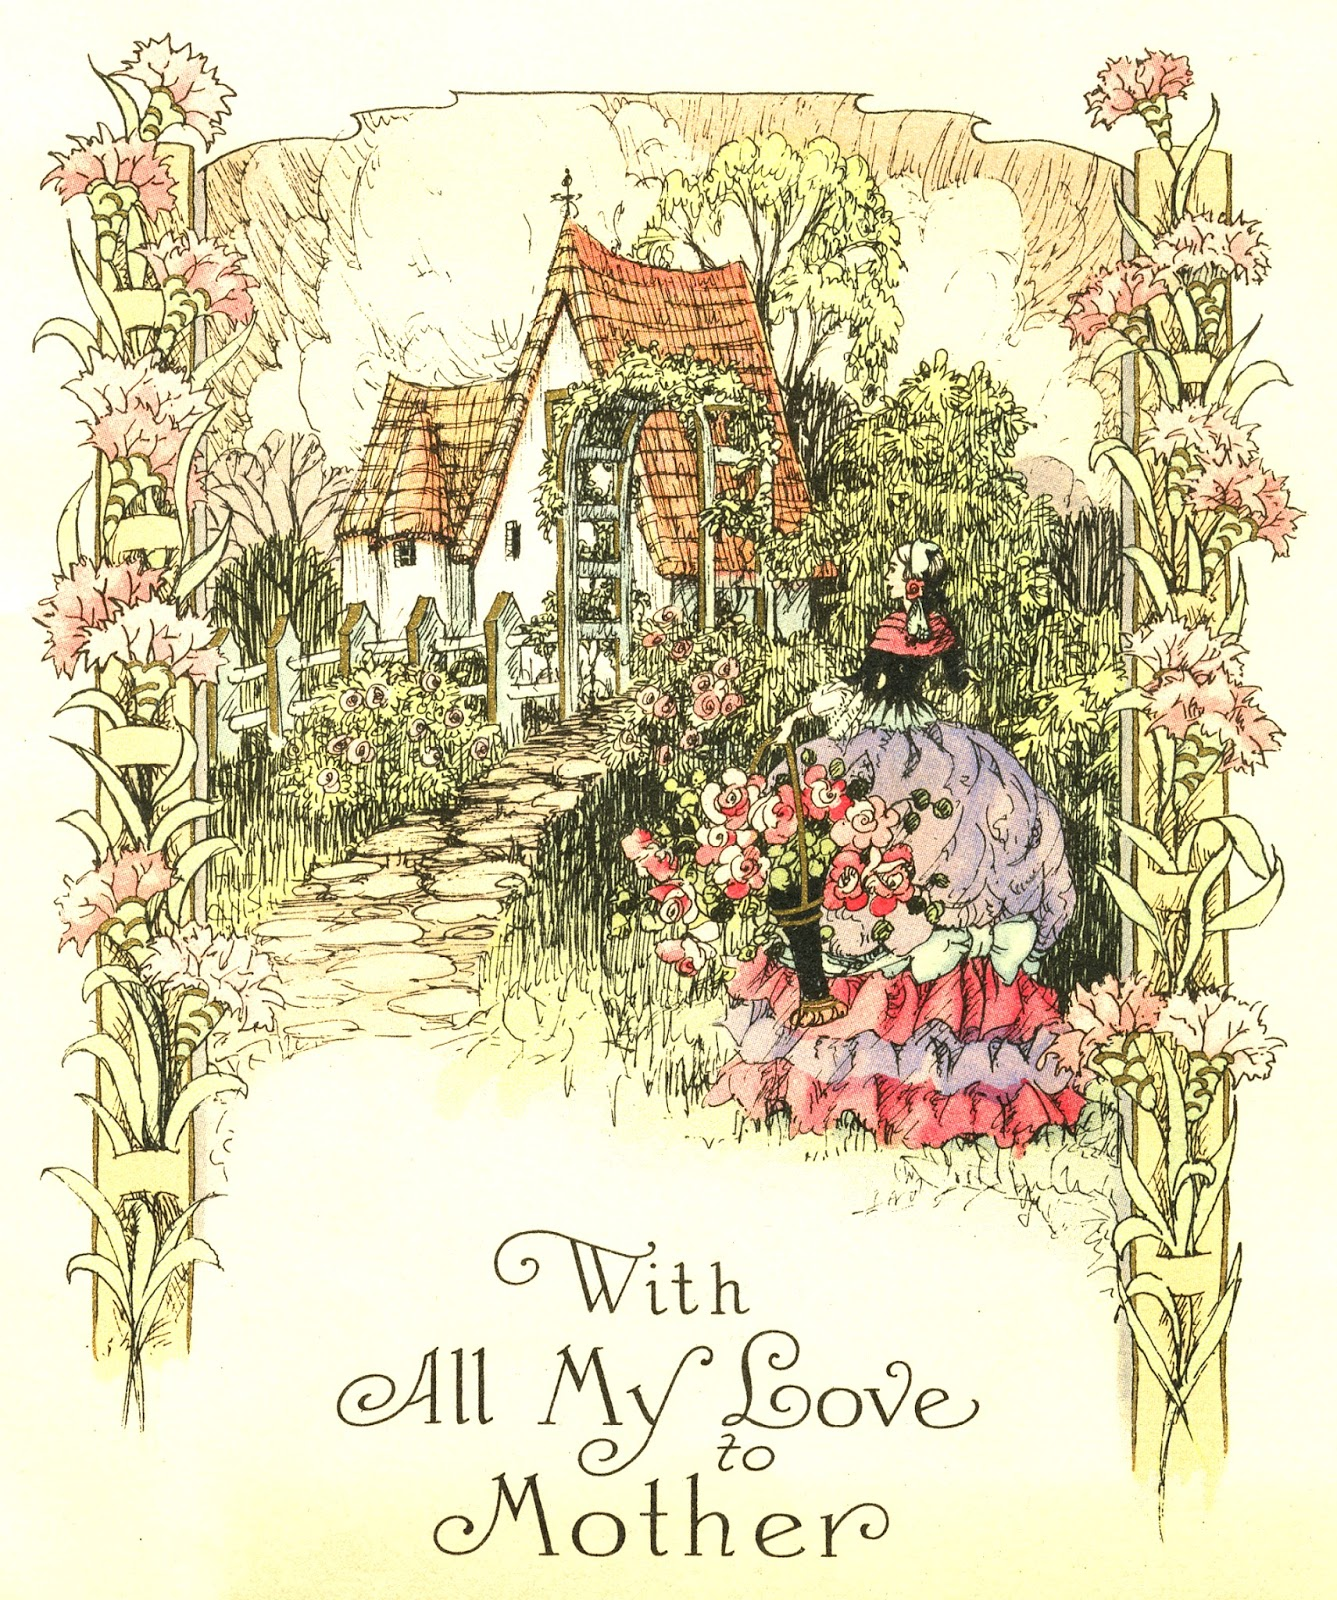 Circa 1930 greeting card features a storybook cottage with a dovecote and thatched roof